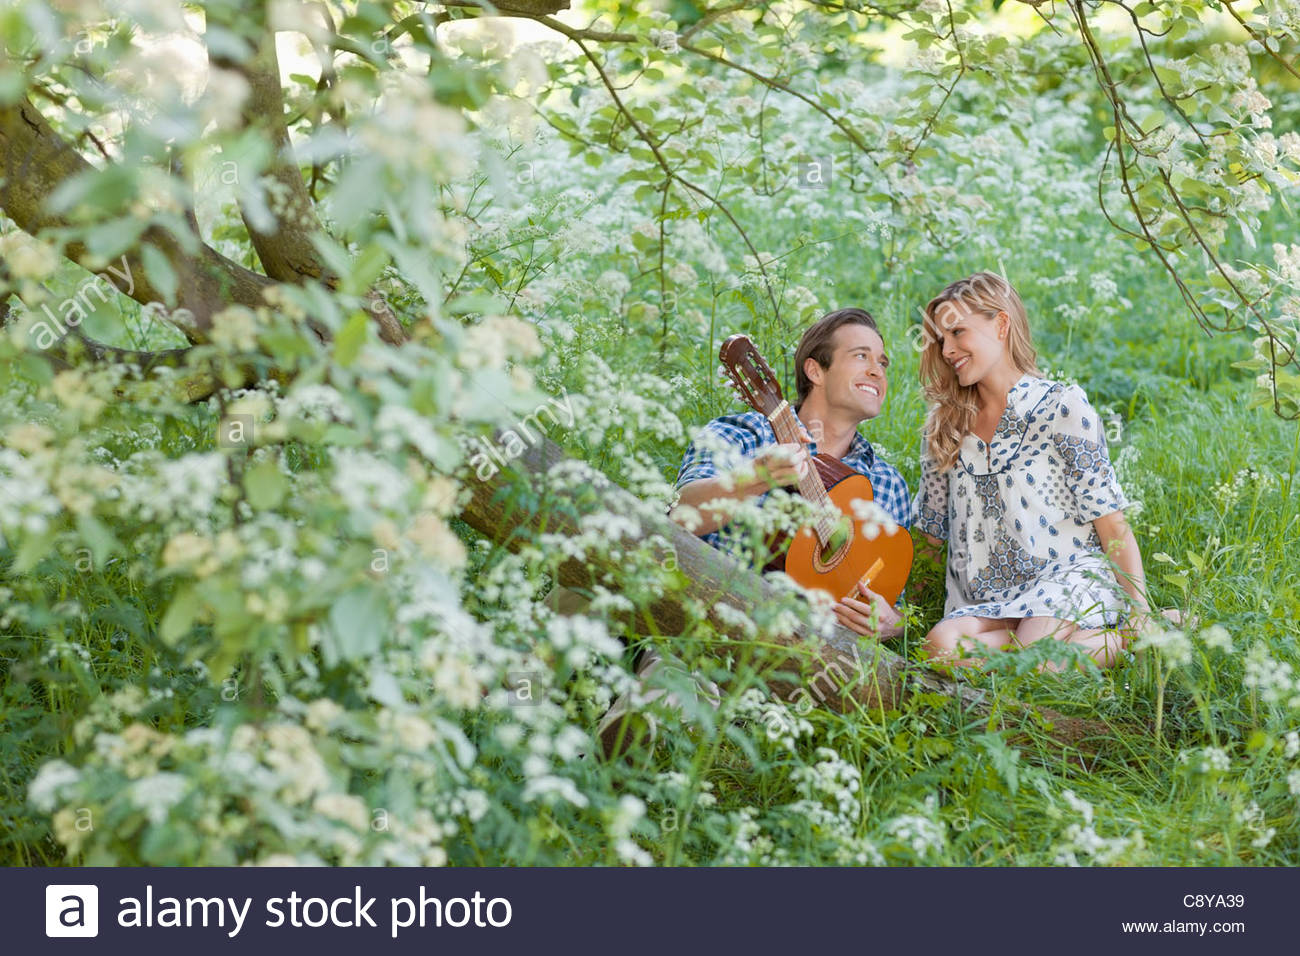 Man playing guitar for girlfriend in forest - Stock Image